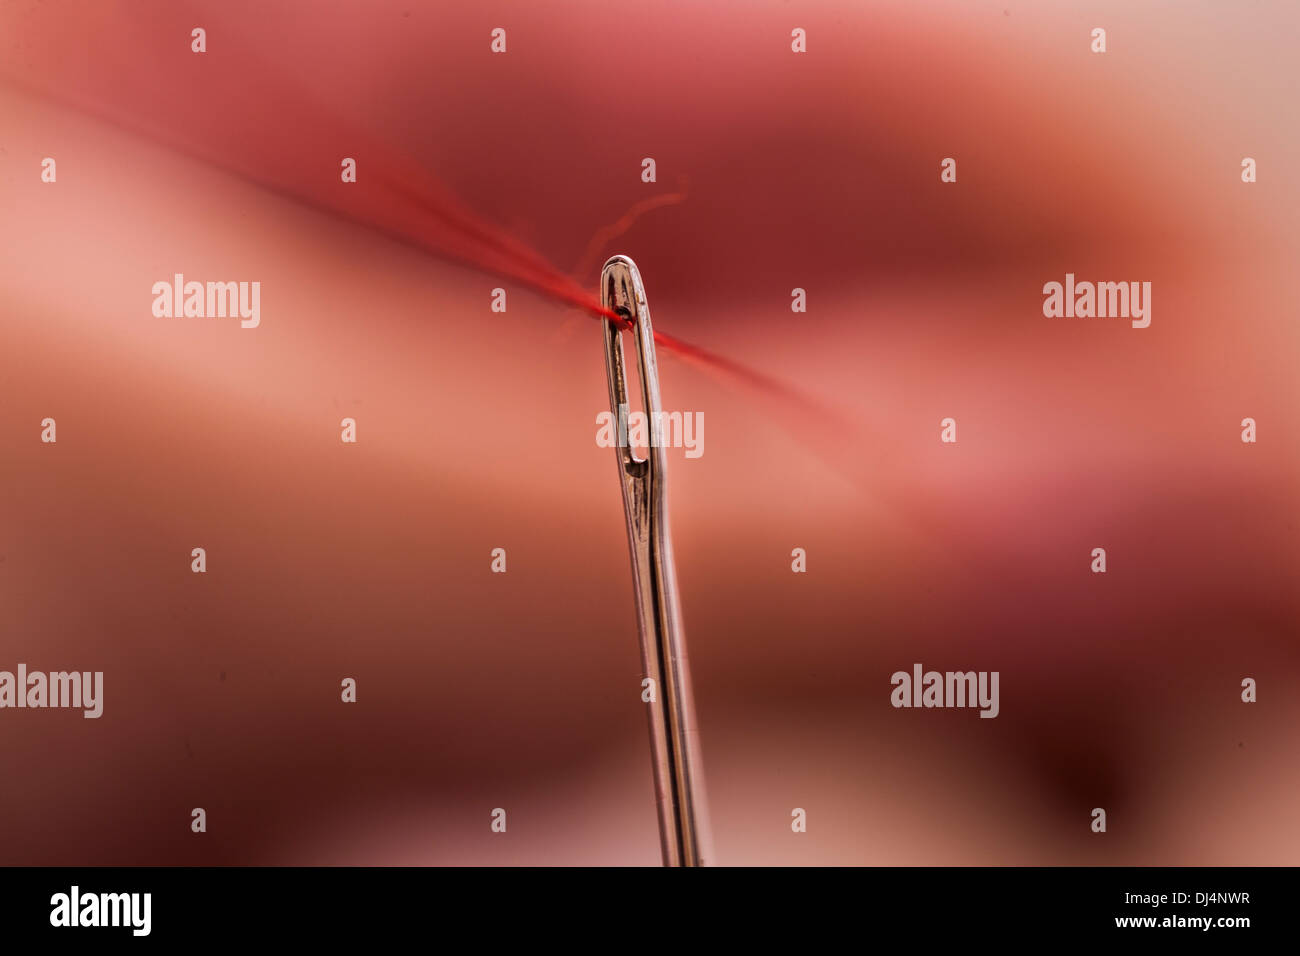 A needle on a red thread with a background in mixed redish blured colors. - Stock Image